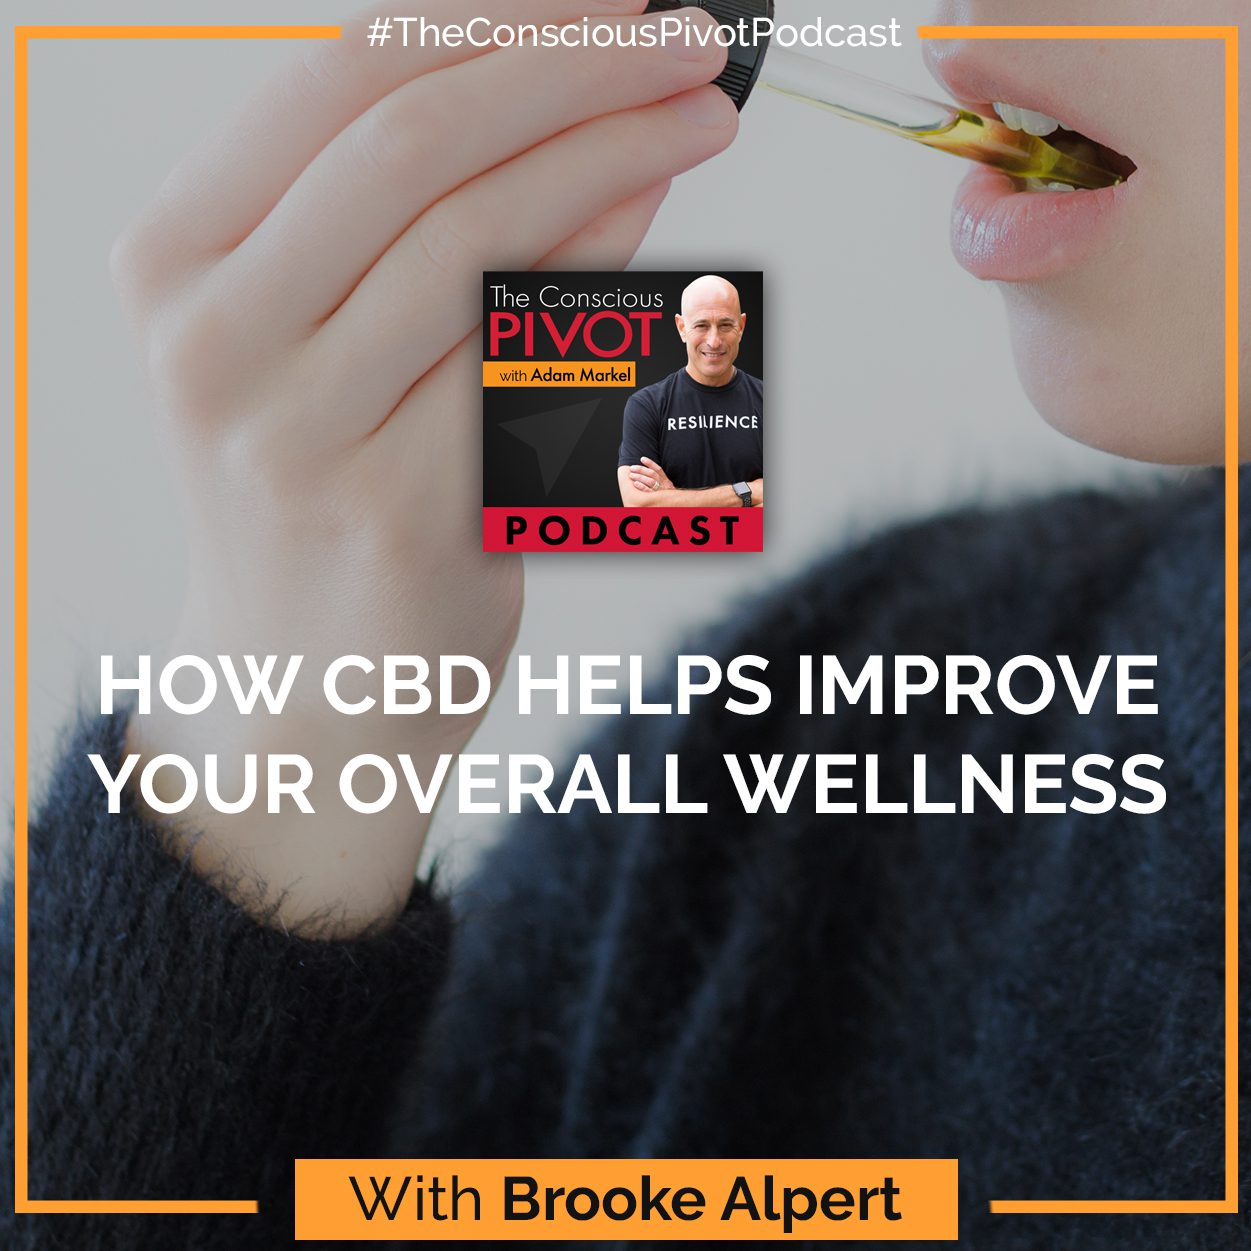 How CBD Helps Improve Your Overall Wellness With Brooke Alpert